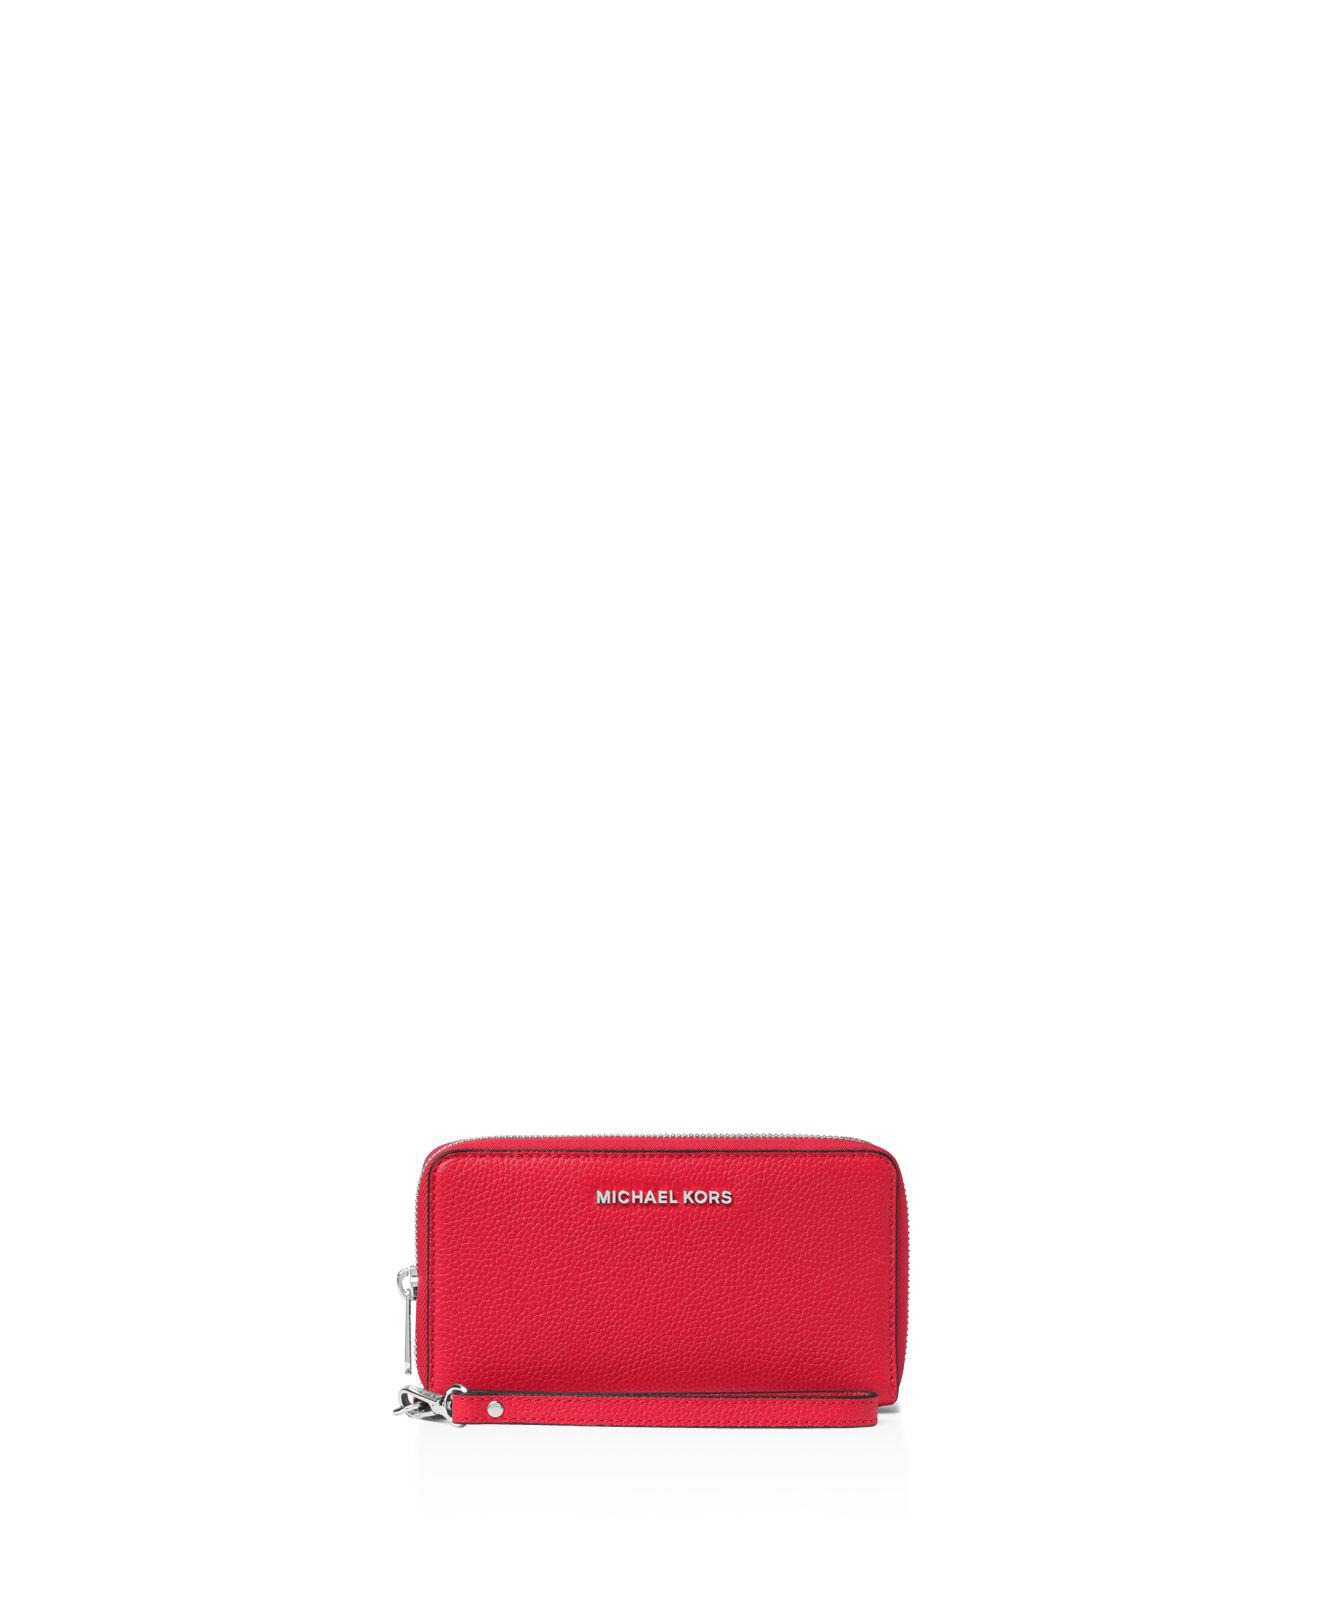 7341a0e6730cf7 Lyst - Michael Kors Mercer Large Flat Multi Function Phone Case in Red